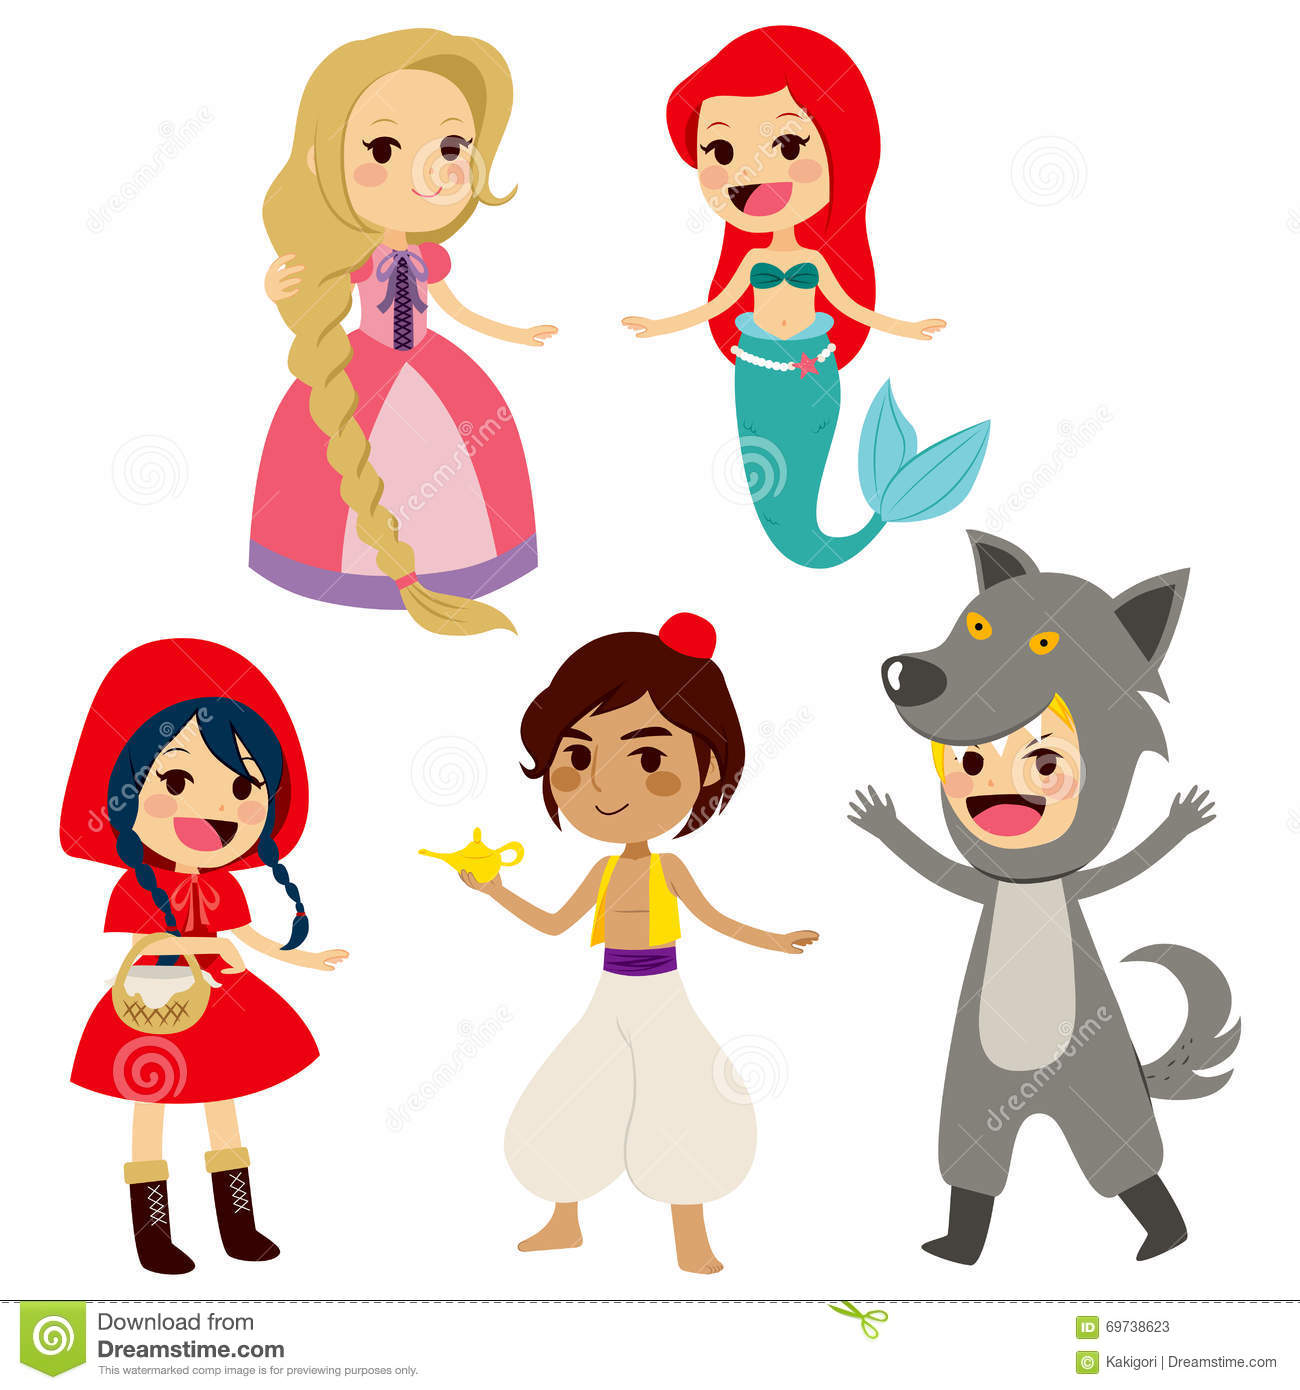 Fairy Tale Set Characters Stock Vector - Image: 69738623